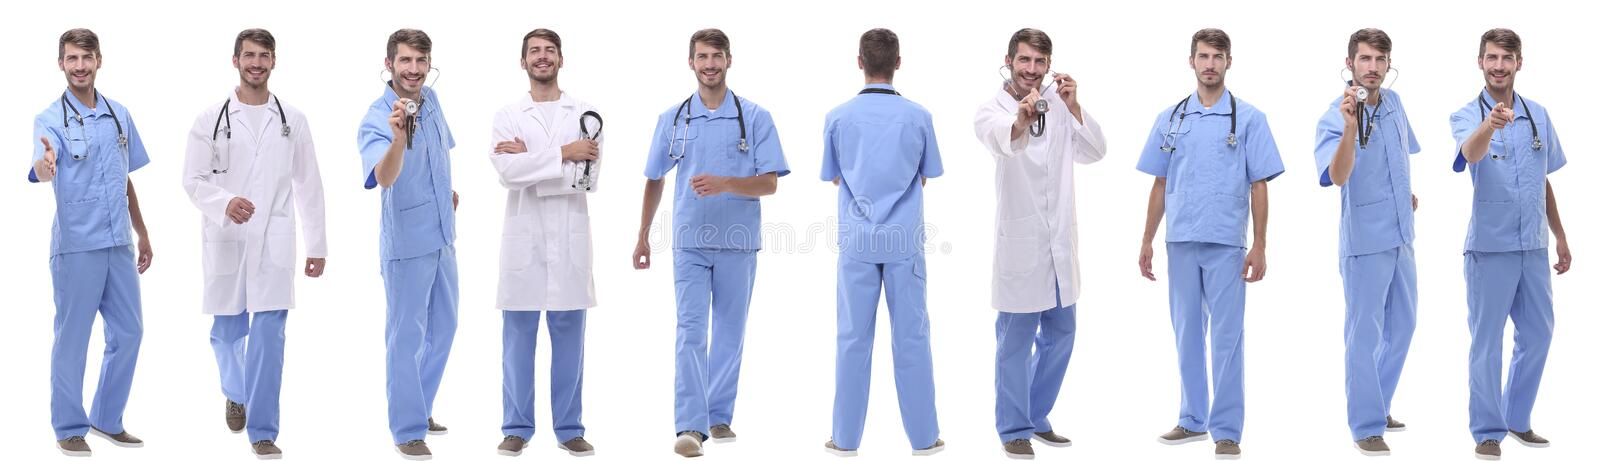 Panoramic collage group of medical doctors . isolated on white royalty free stock images